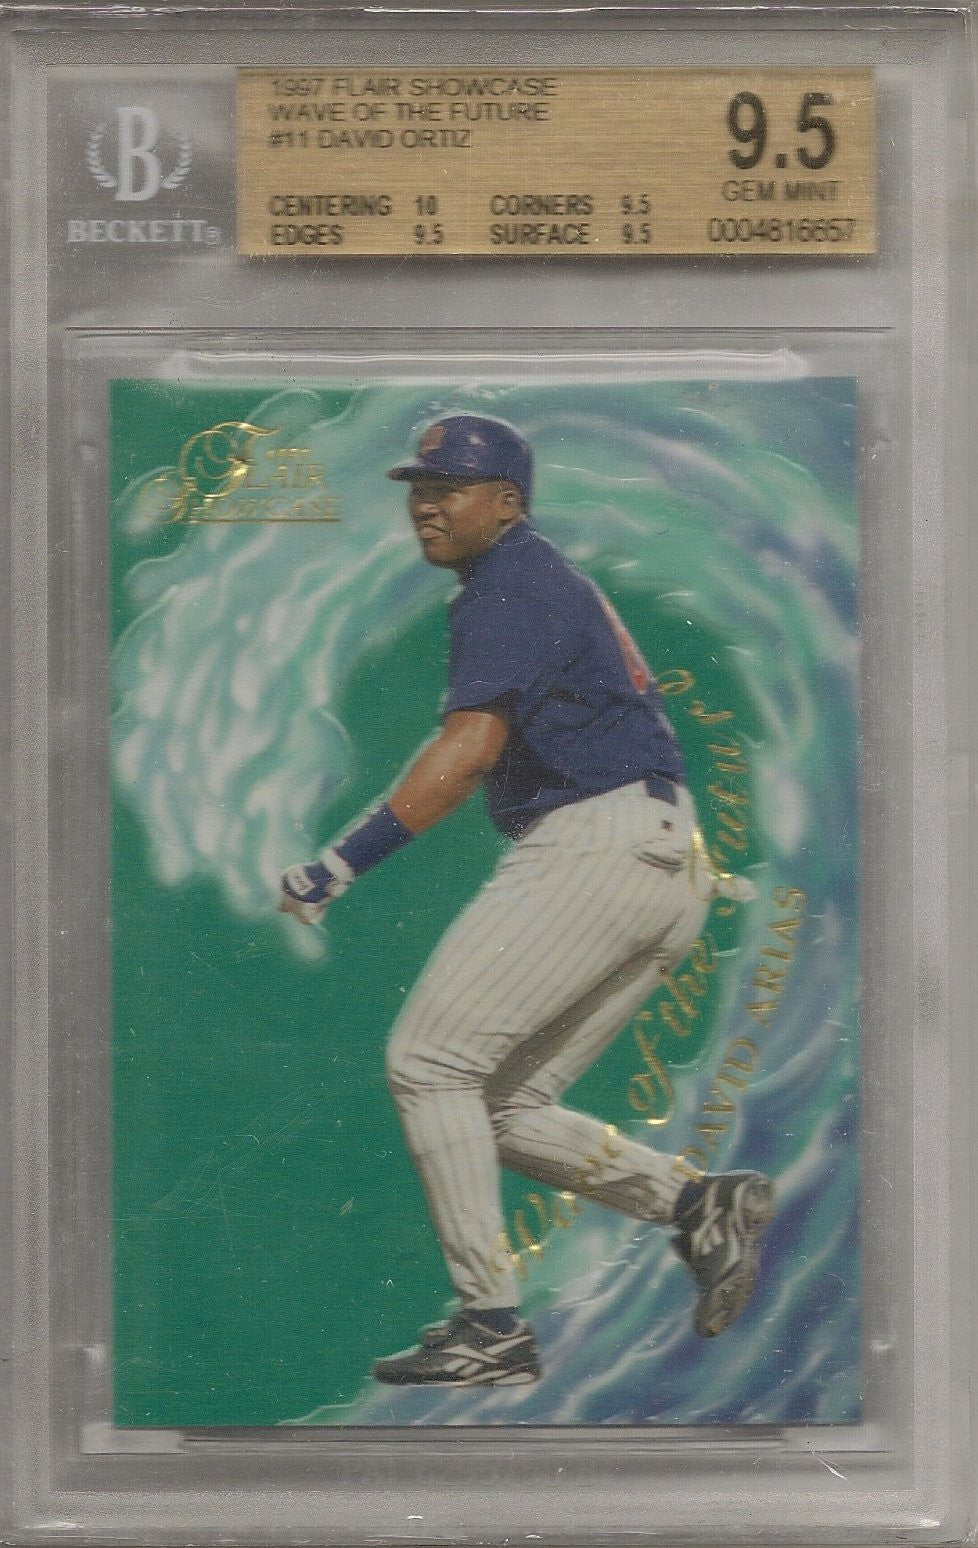 David Ortiz, Wave of the Future, 1997 Flair Showcase, BGS 9.5